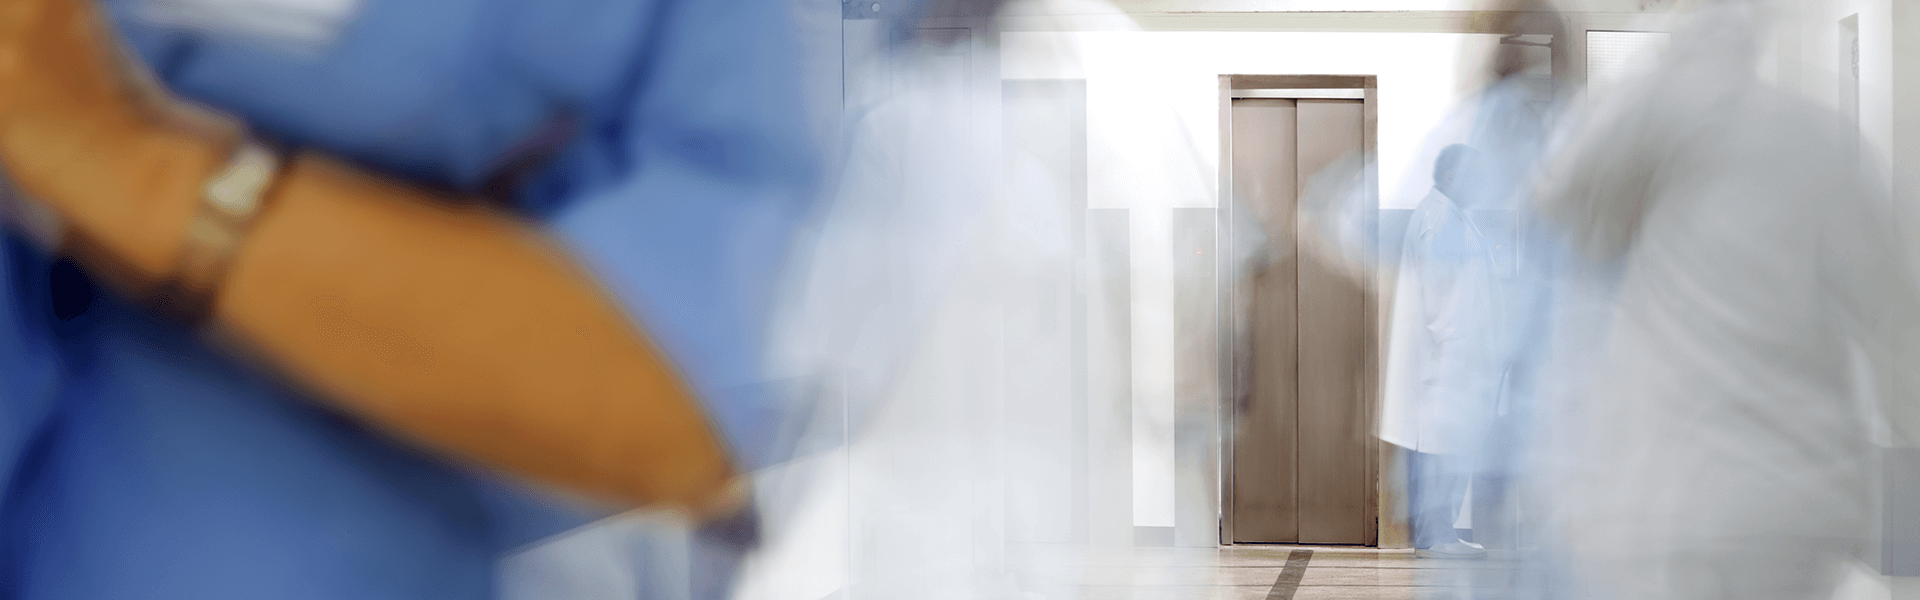 Blurred figures of doctors and nurses in a hospital corridor